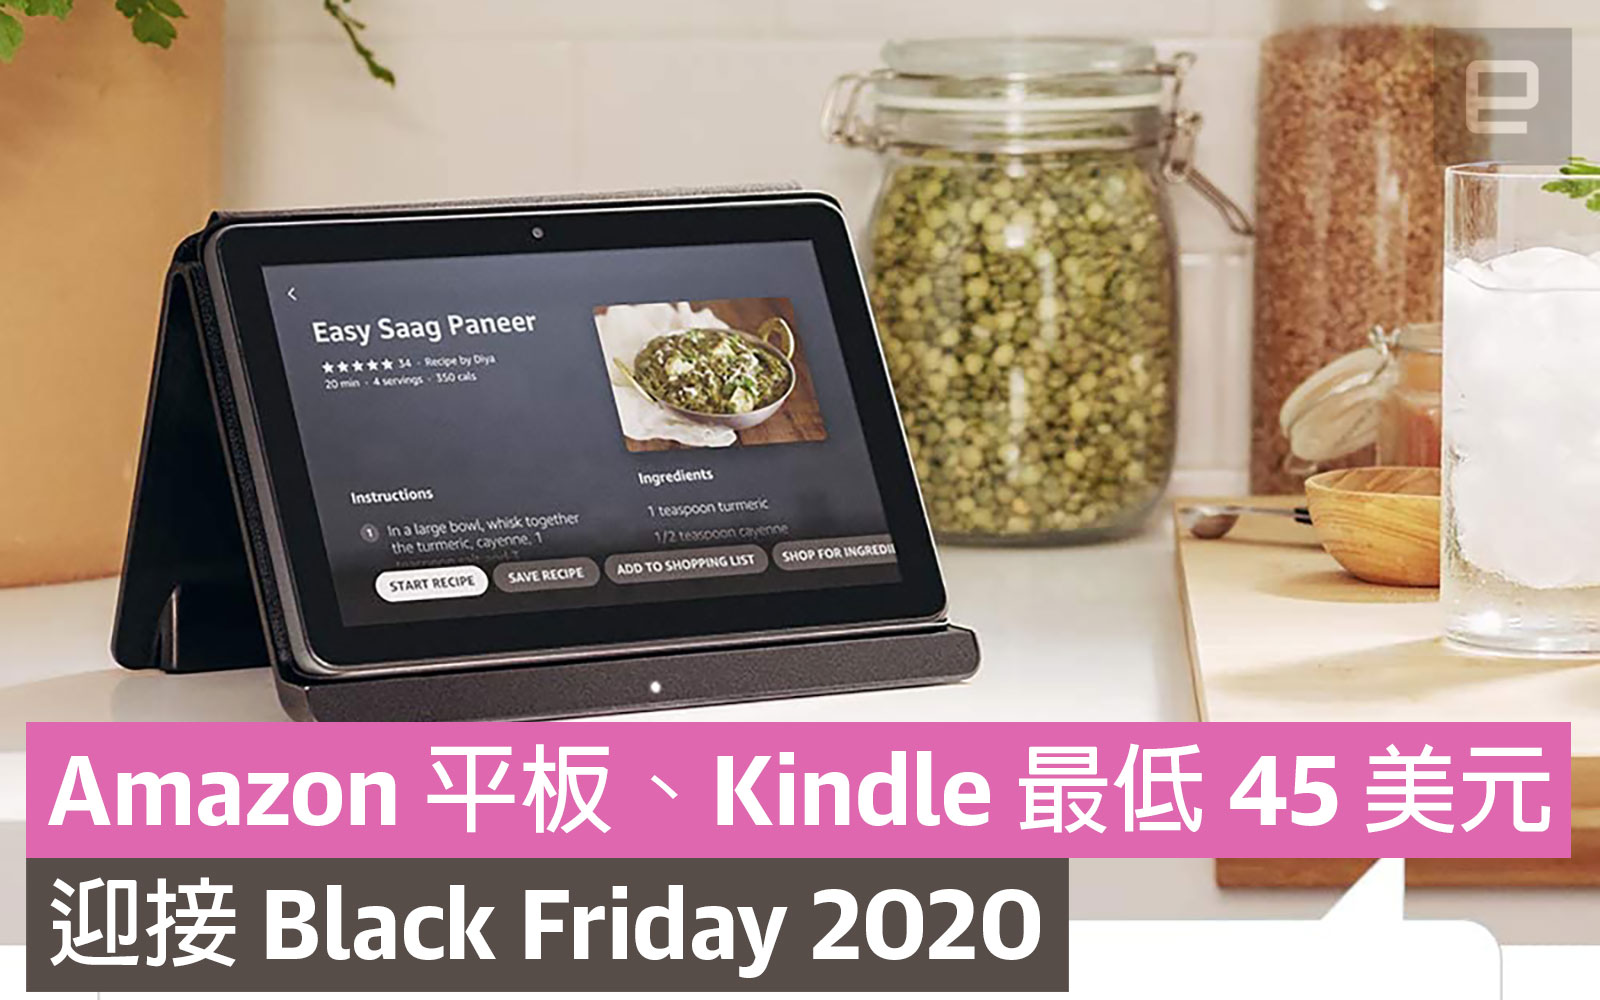 Amazon Fire HD tablet kindle black friday deal